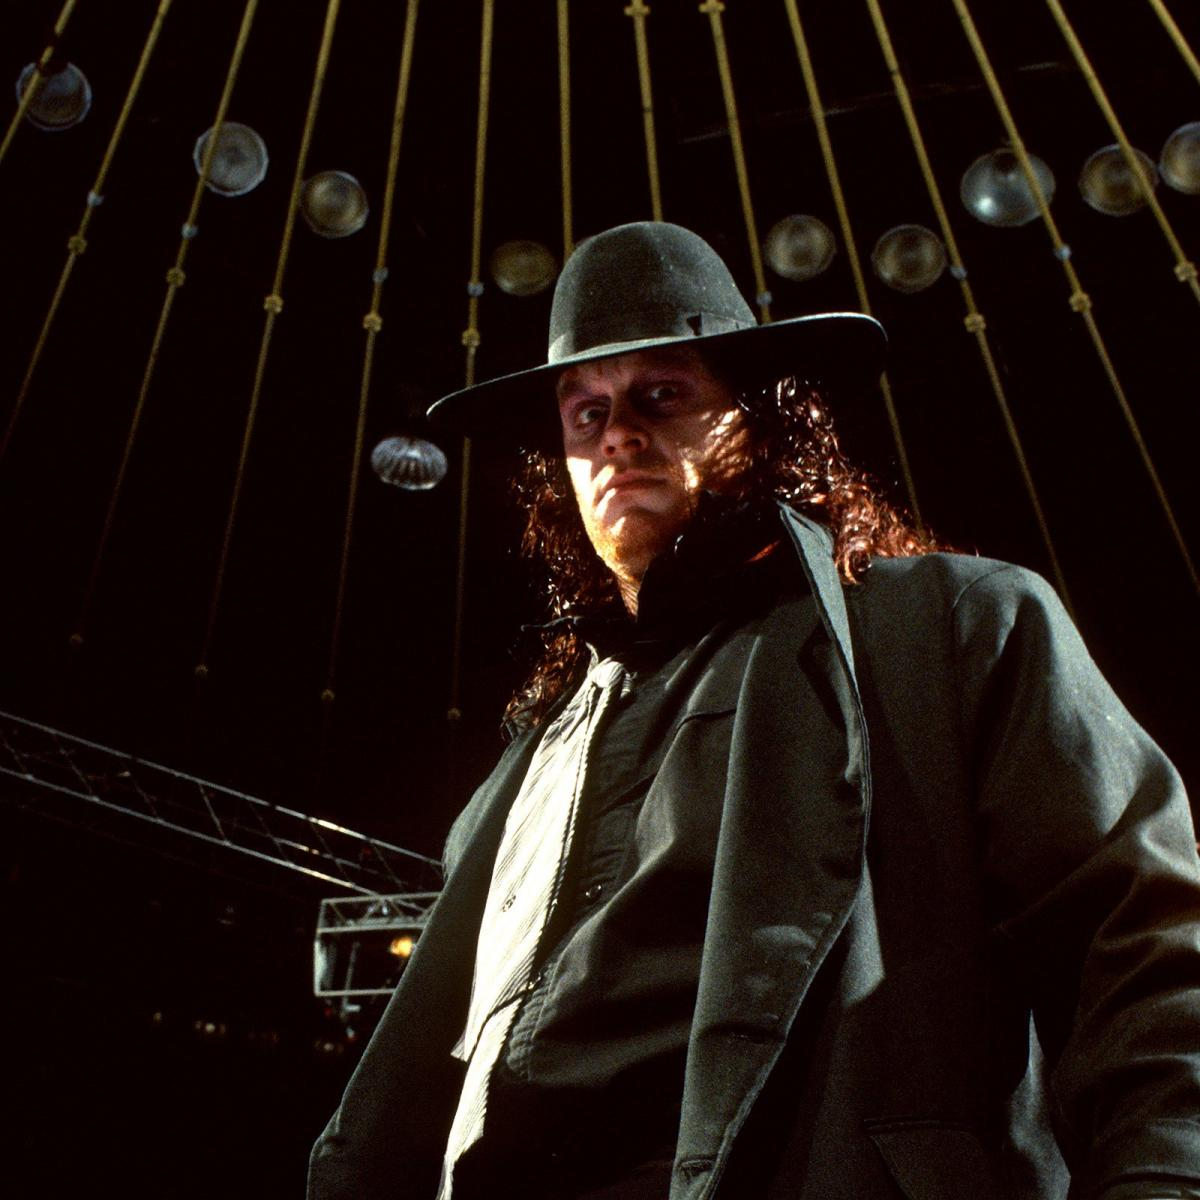 Happy 53rd birthday to the legend and the GOAT The Undertaker!!!!!